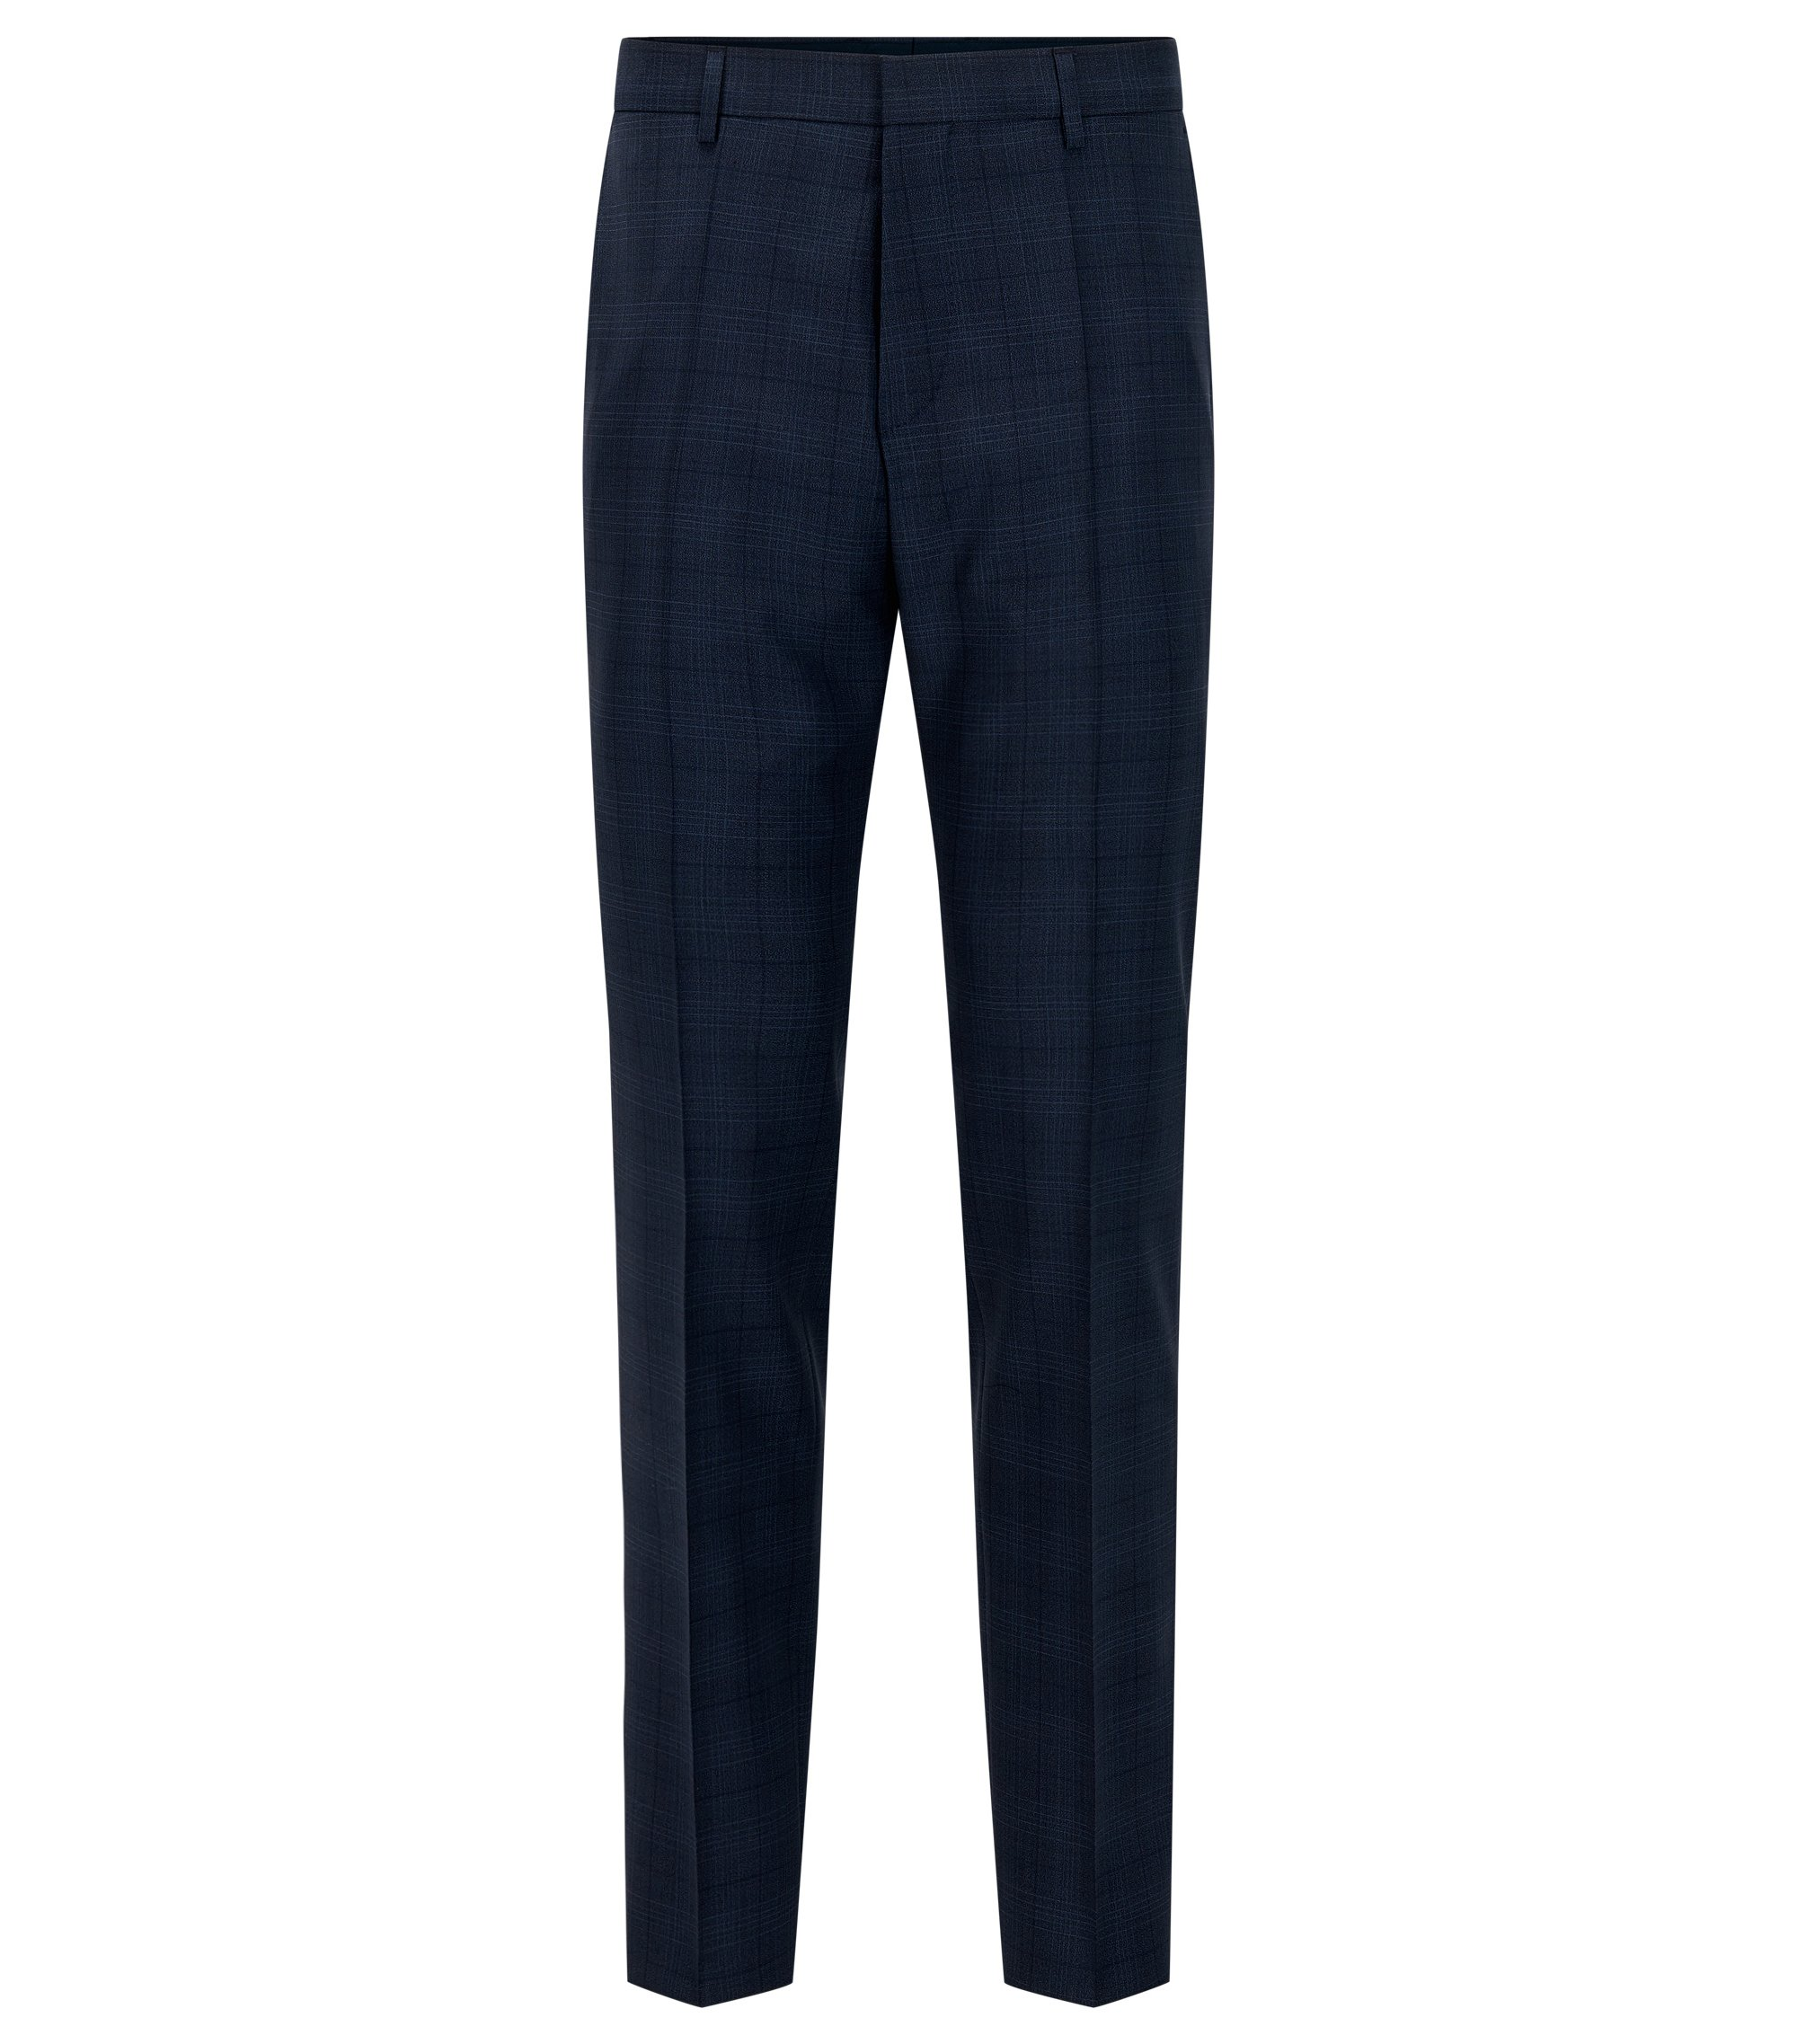 Glen Check Virgin Wool Dress Pant, Slim Fit | Genesis, Dark Blue